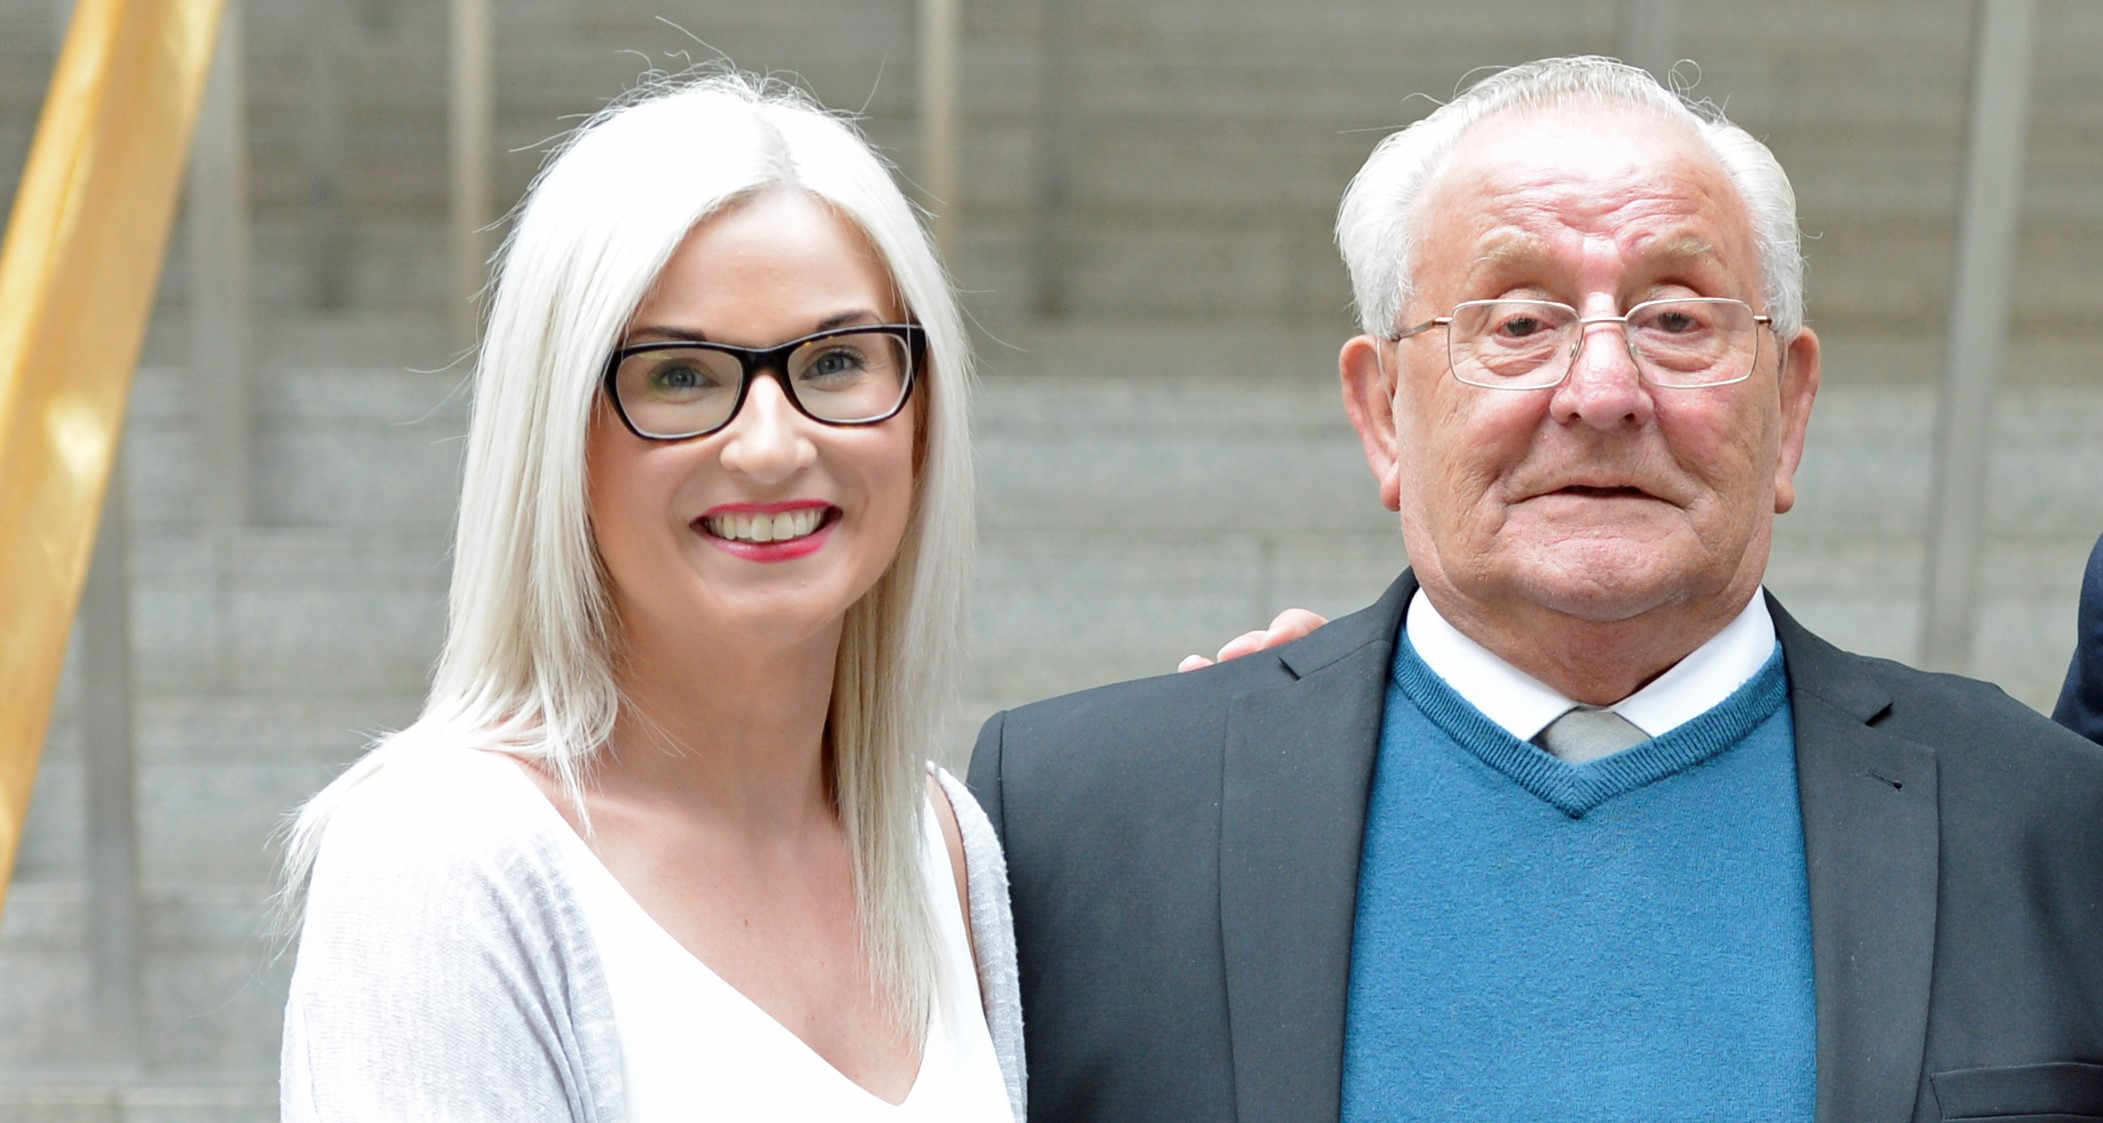 Gilly Murray and David Ramsay Snr - niece and father of suicide victim David Ramsay Jnr